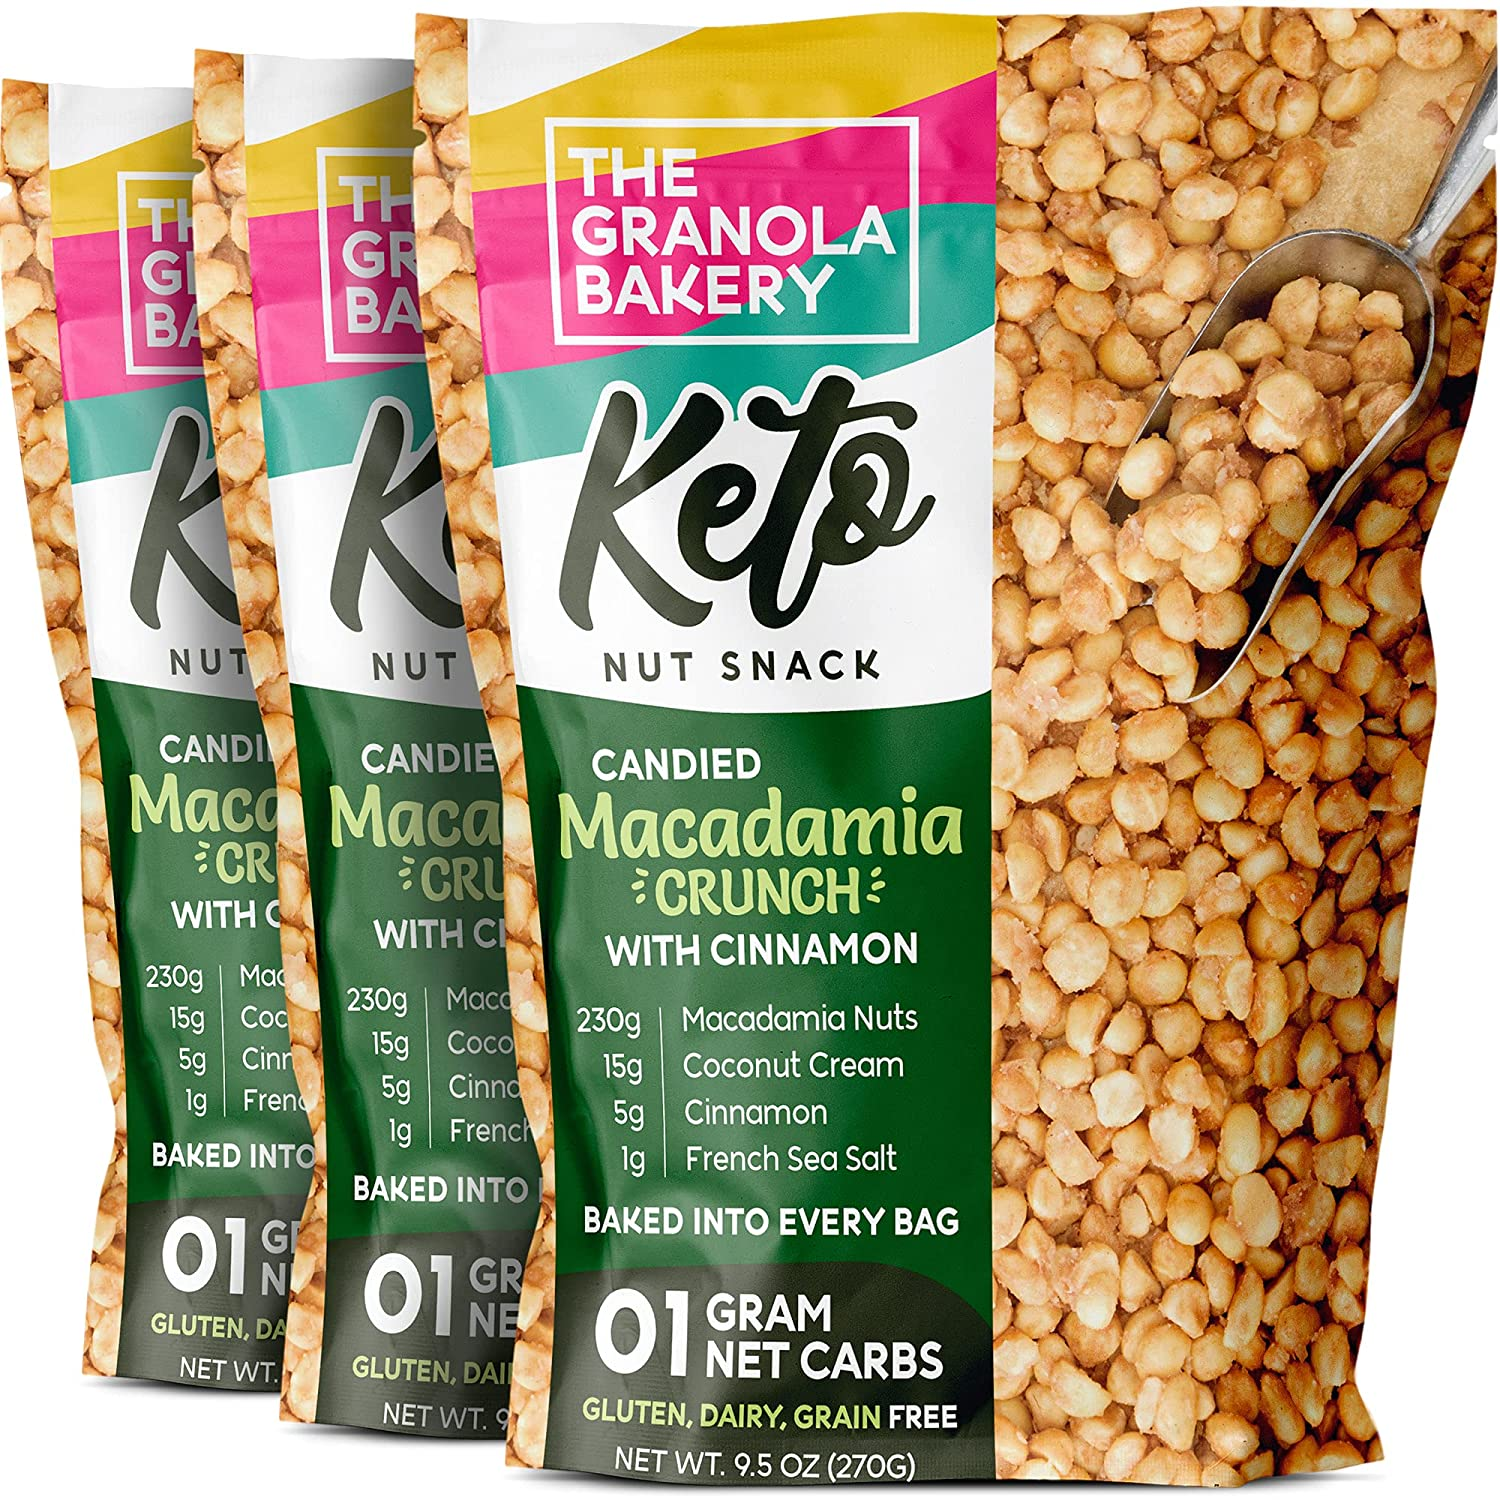 TGB Keto Candied Macadamia | 1g Net Carb | Low Carb Nut Snack | Healthy Artisanal Food, 9.5 Ounces (Pack of 3)